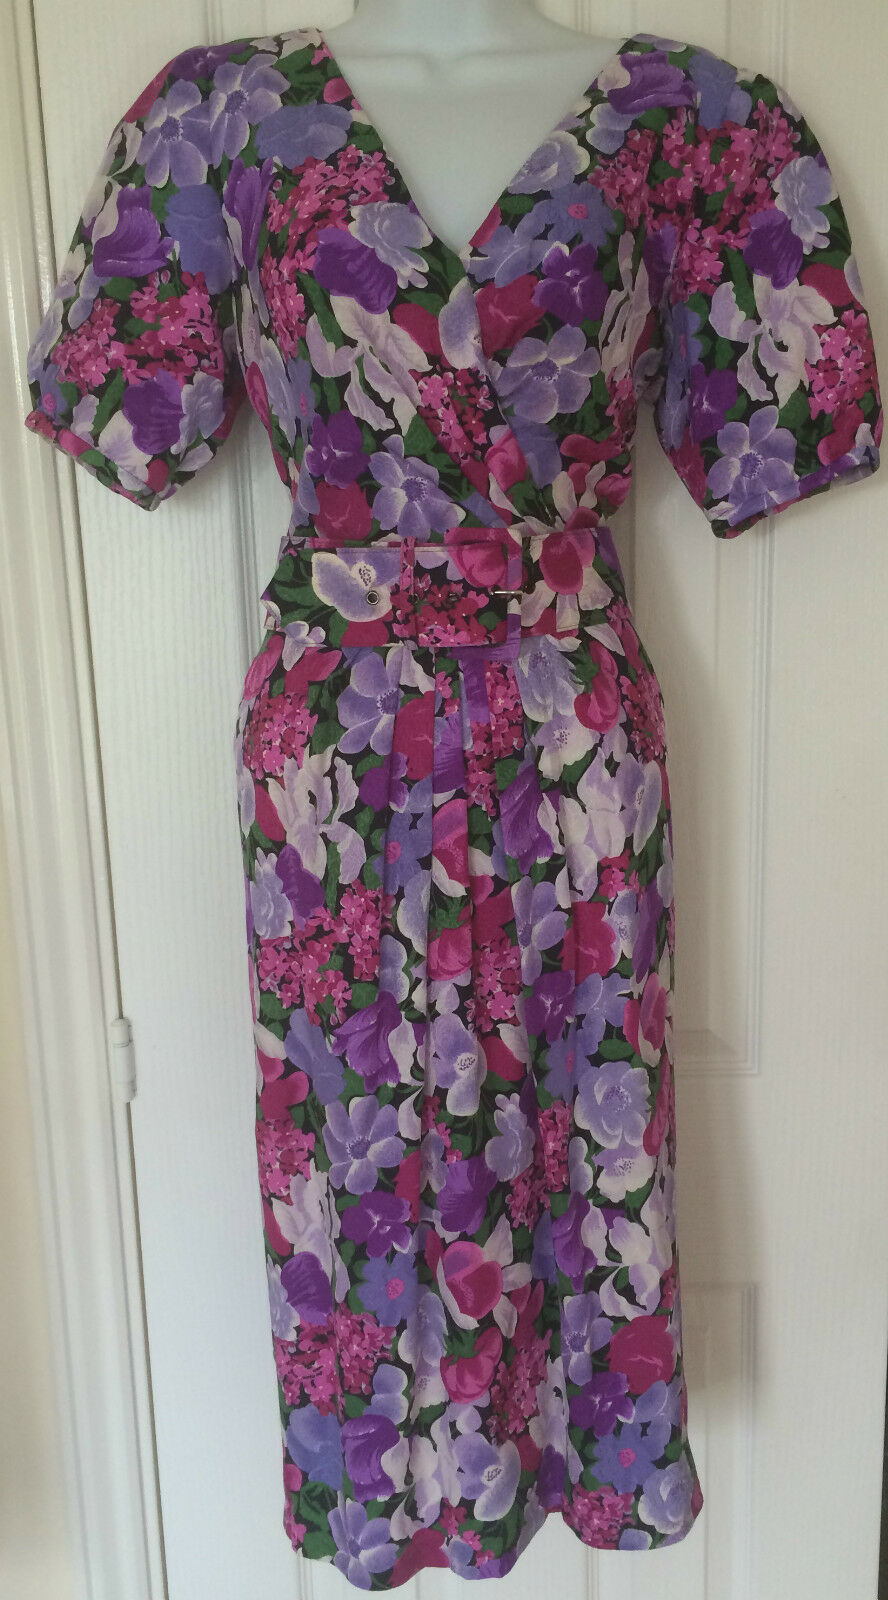 St. Gillian Silk Dress Purples Pinks Belted Wedding MOB Formal Size 8 10